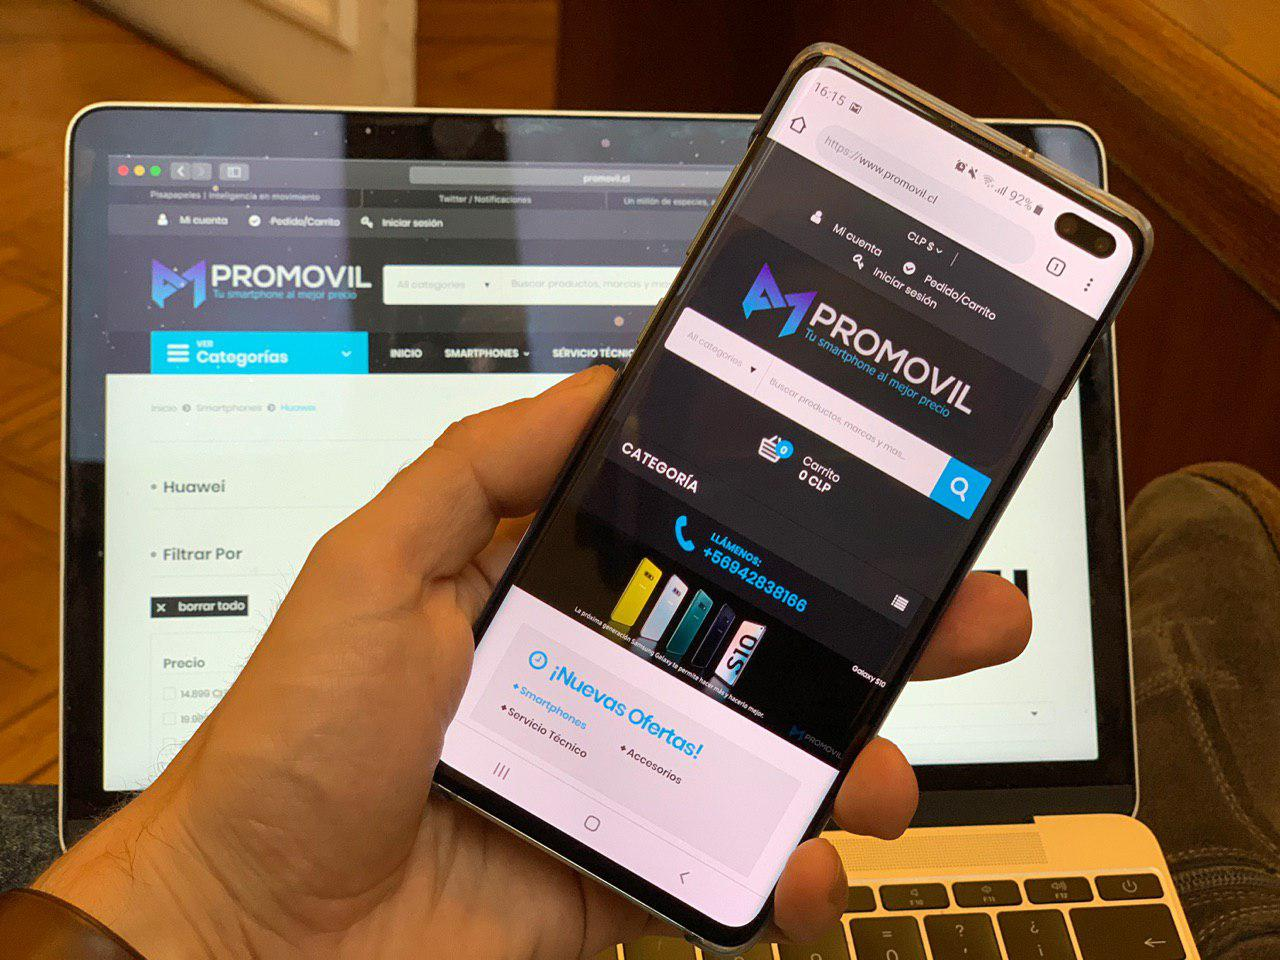 Promovil renews its image and its online store